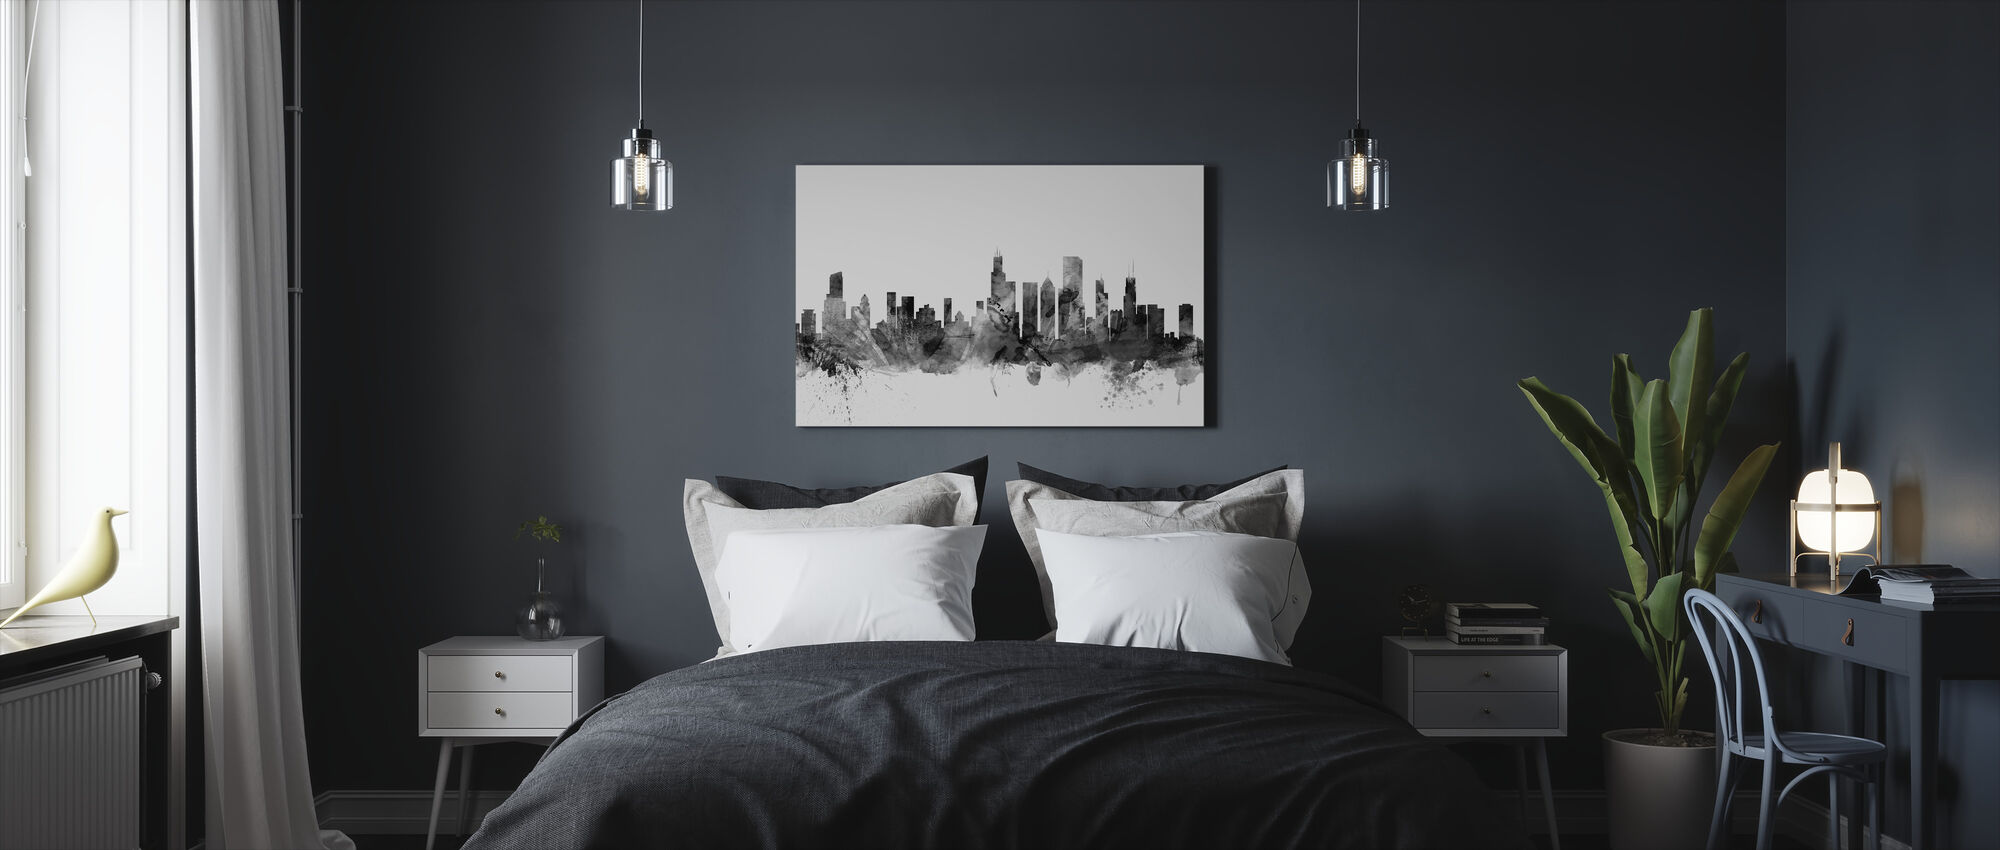 Chicago Skyline Black - Canvas print - Bedroom